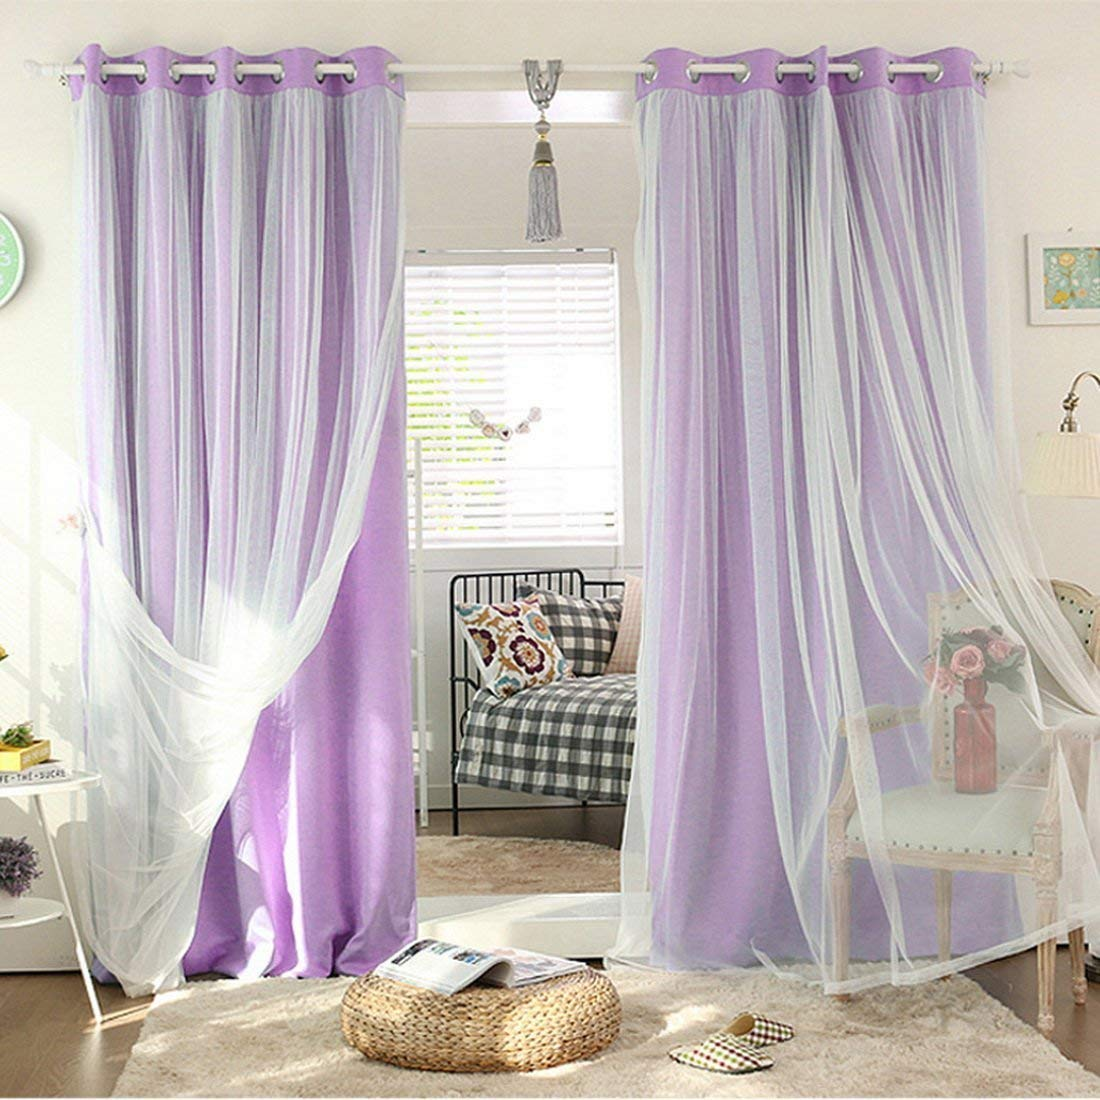 Cheap Blackout Nursery Curtains Find Blackout Nursery Curtains Deals On Line At Alibaba Com